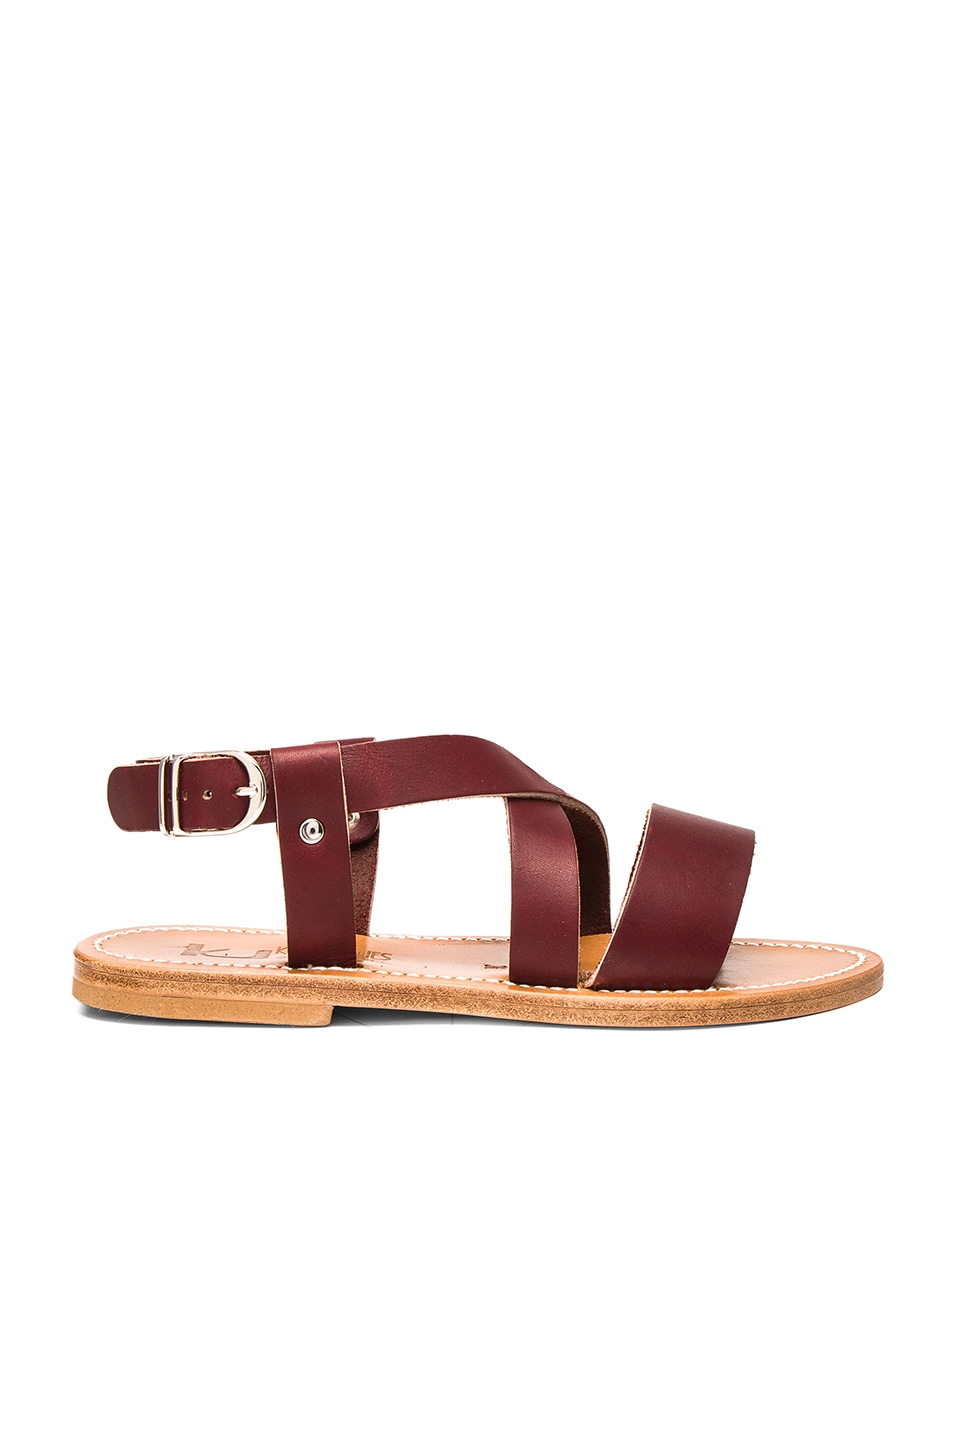 Image 1 of K Jacques Leather Corentin Sandals in Pul Bordo